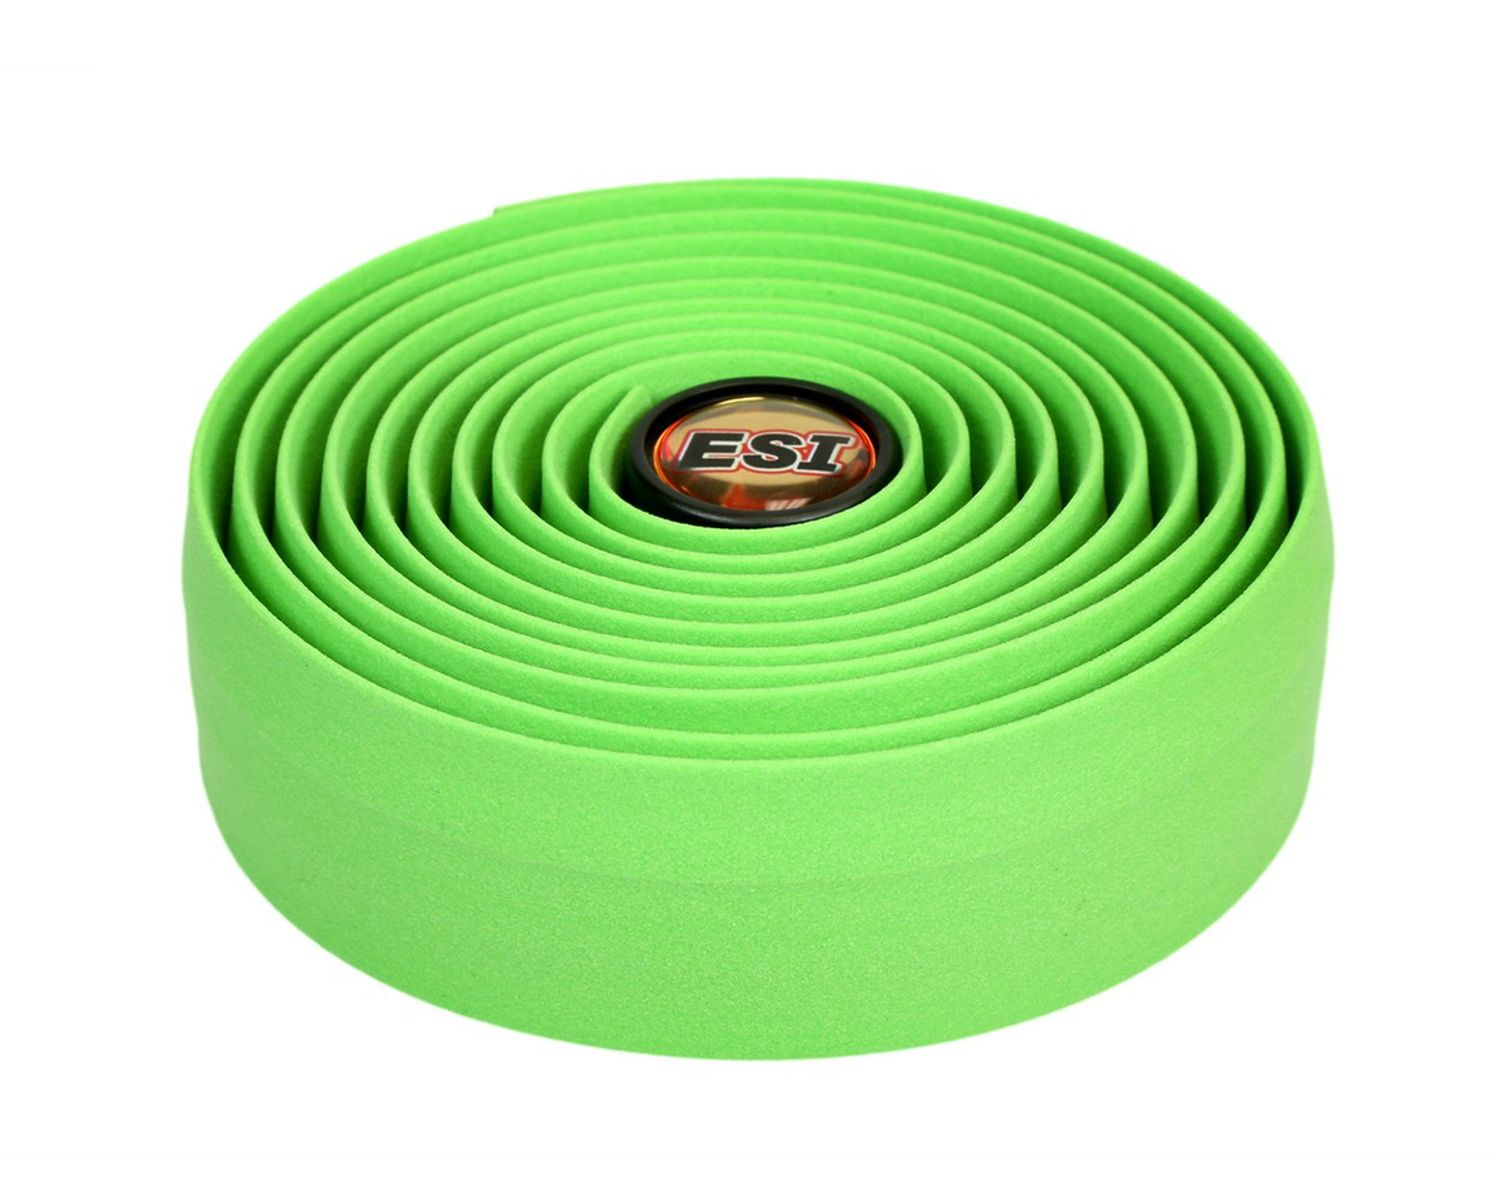 ESI Grips RCT Wrap Silicone Bar Tape | Misc. Handlebars and Stems